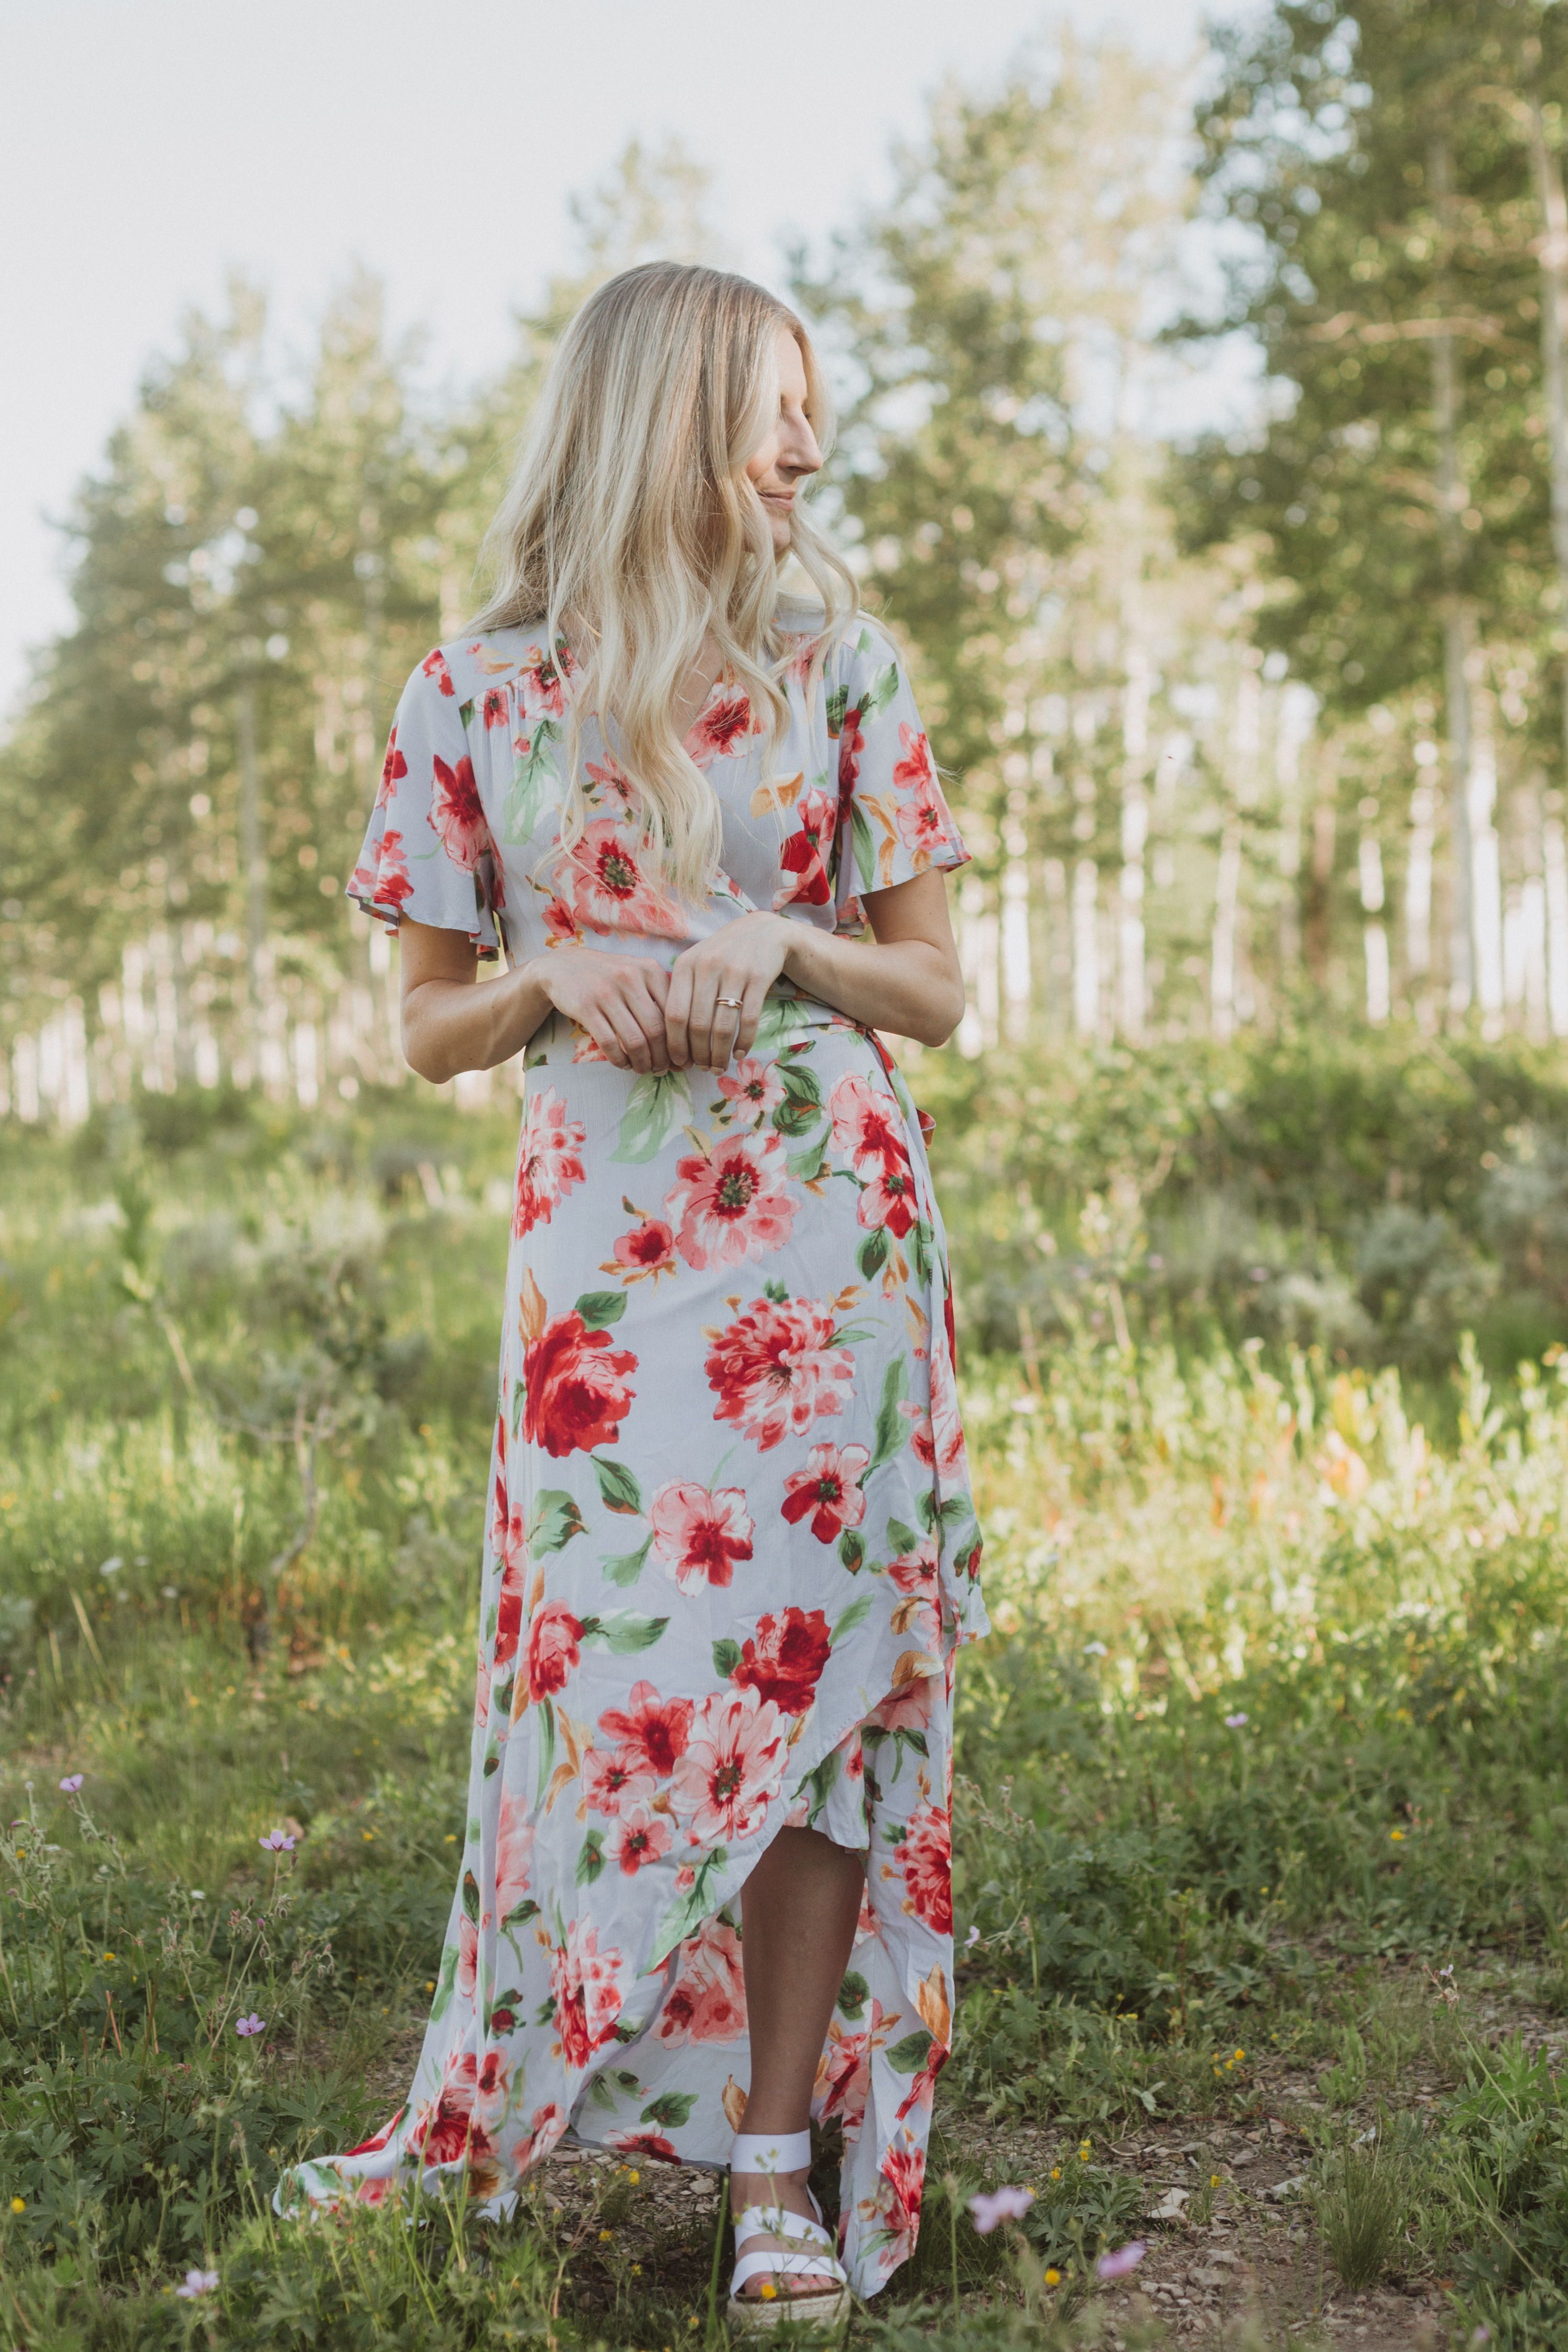 500+ Best floral outfit ideas in 2020 | floral outfit, floral tops, dresses